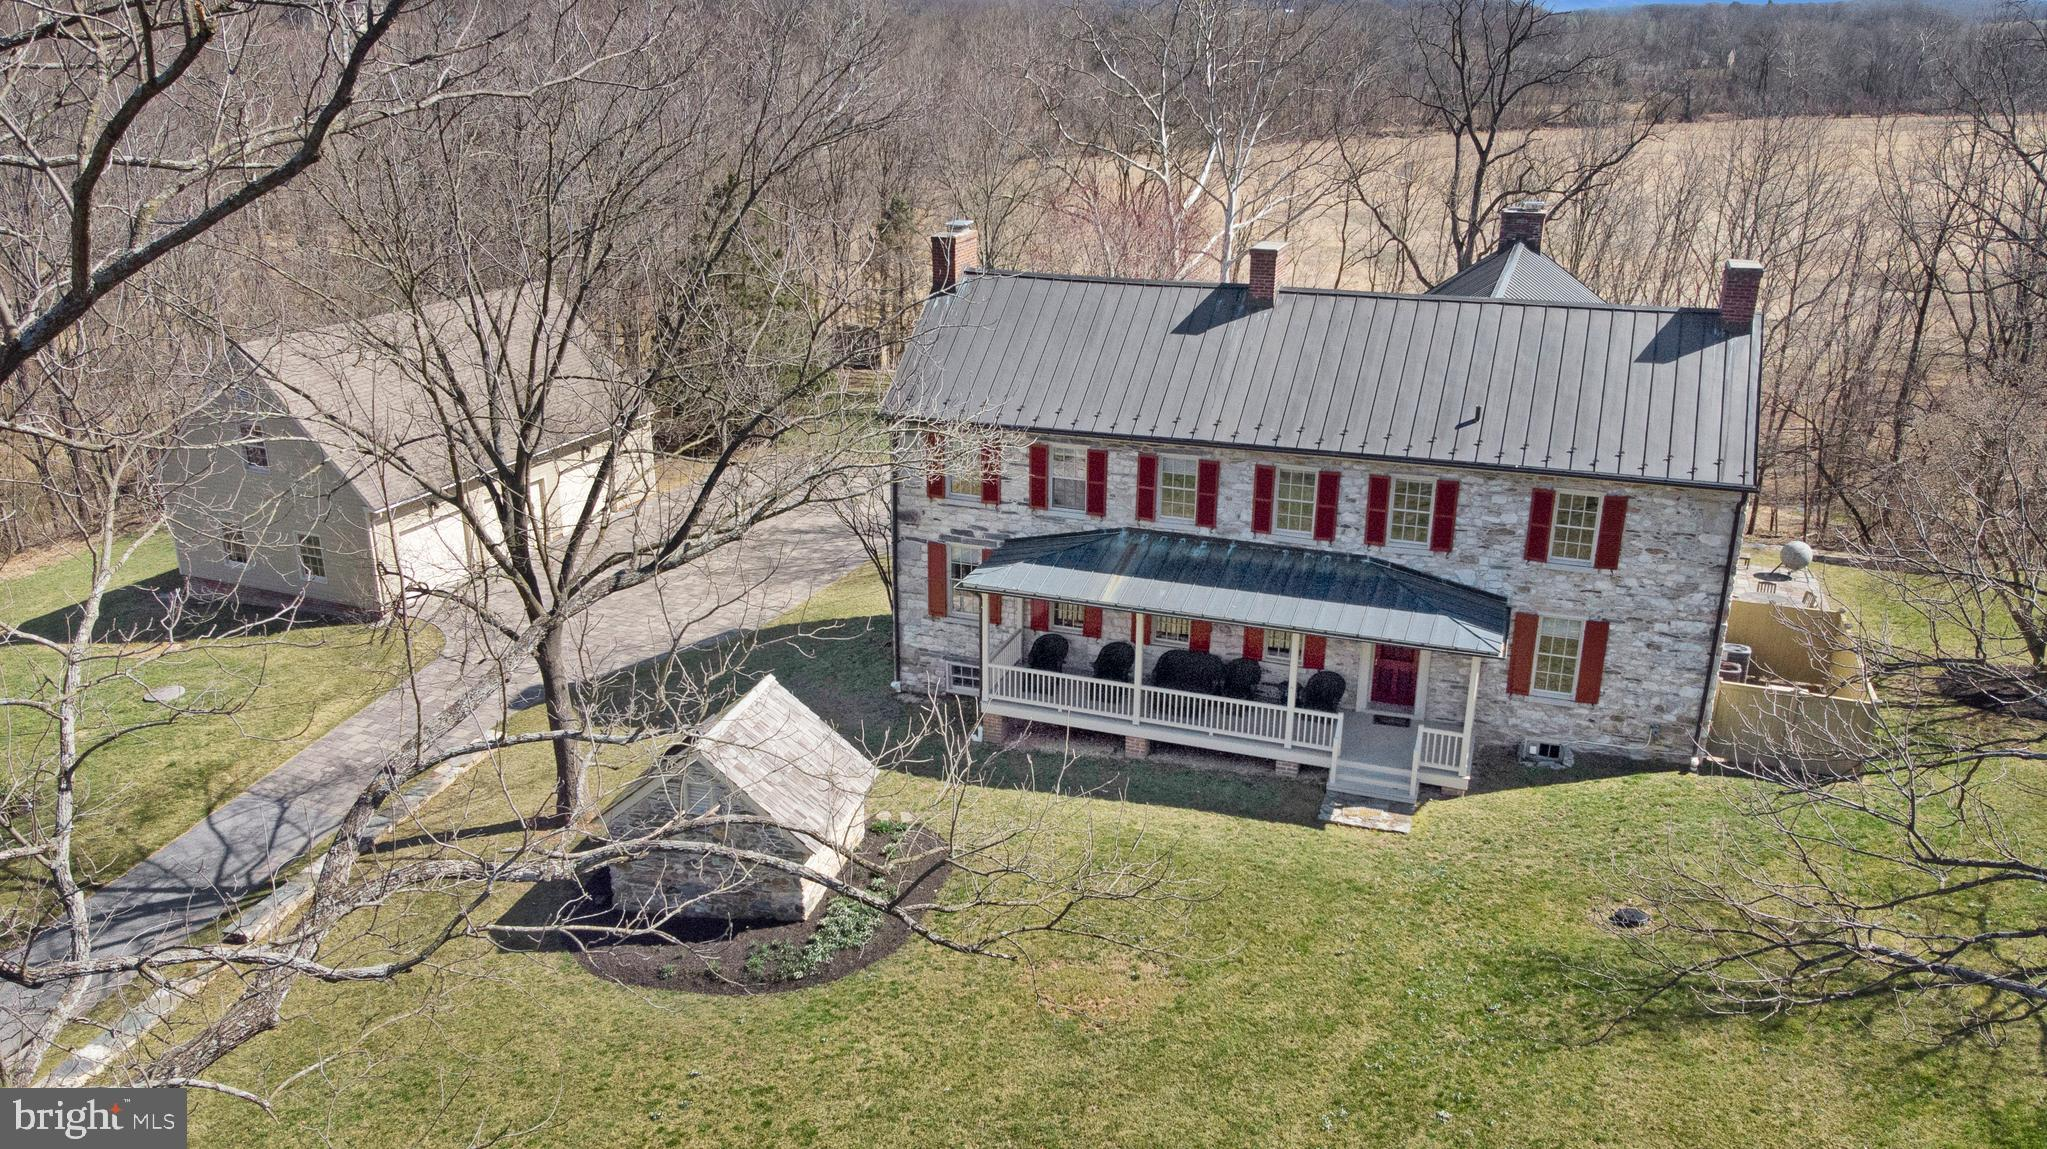 13025 GLISSANS MILL ROAD, MOUNT AIRY, MD 21771